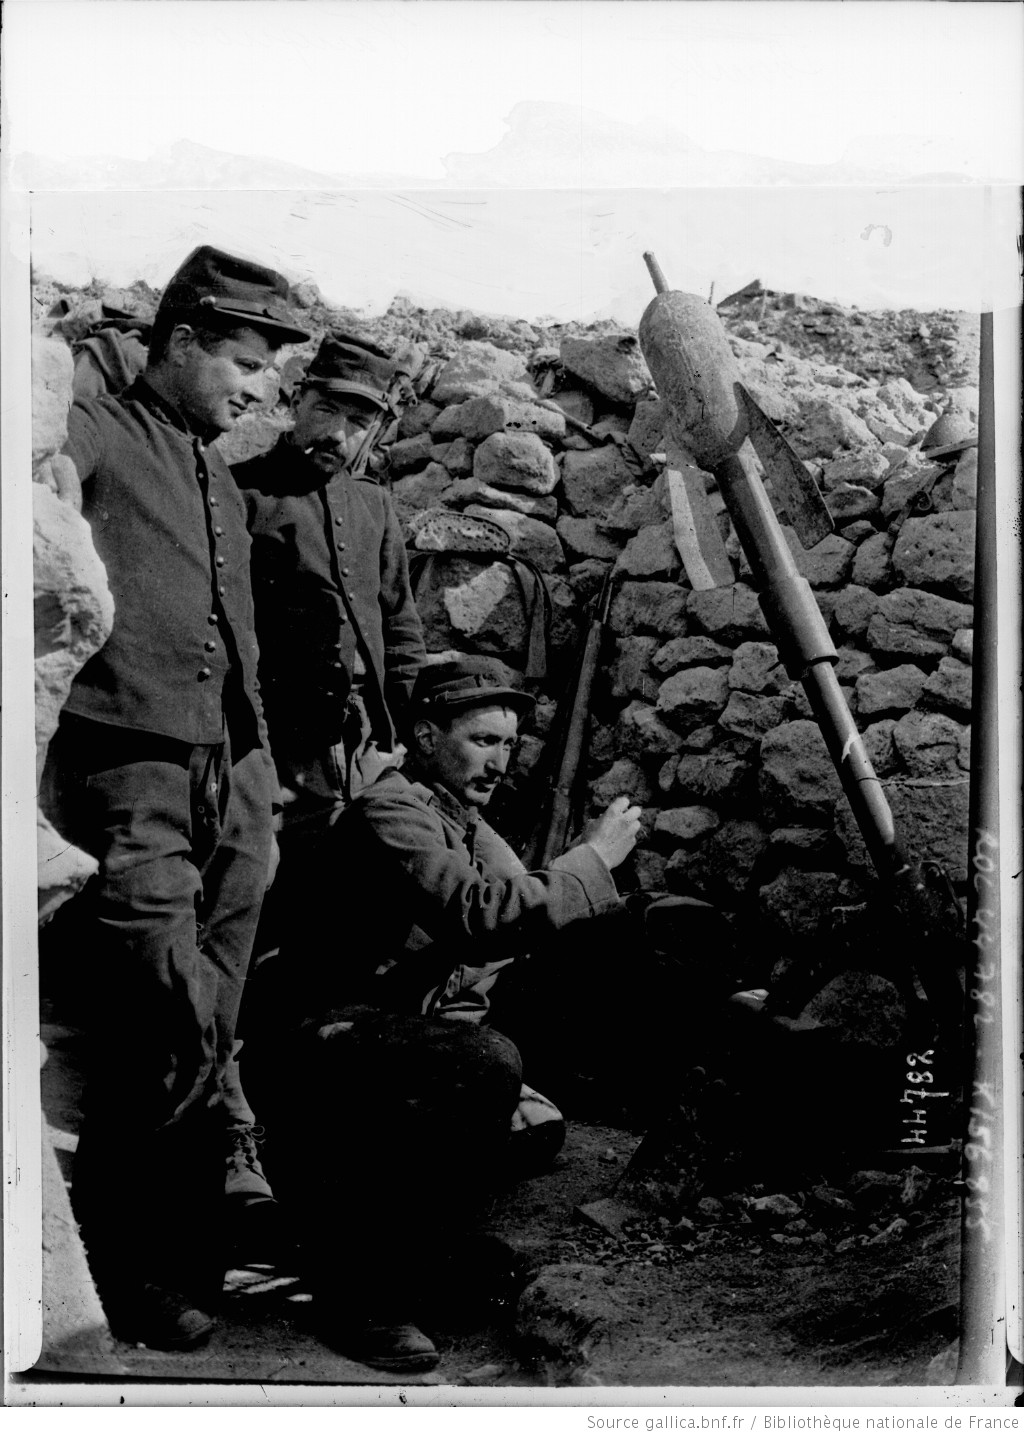 """""""Crapouillot"""" - the name given to French Trench Mortars & the men who manned them in the Great War, taken from the term for 'le petit crapaud', or 'the little toad'. These photos were taken in the trenches at Vauquois in 1915. #WW1 #1GM https://t.co/MDhIAl2zW7"""